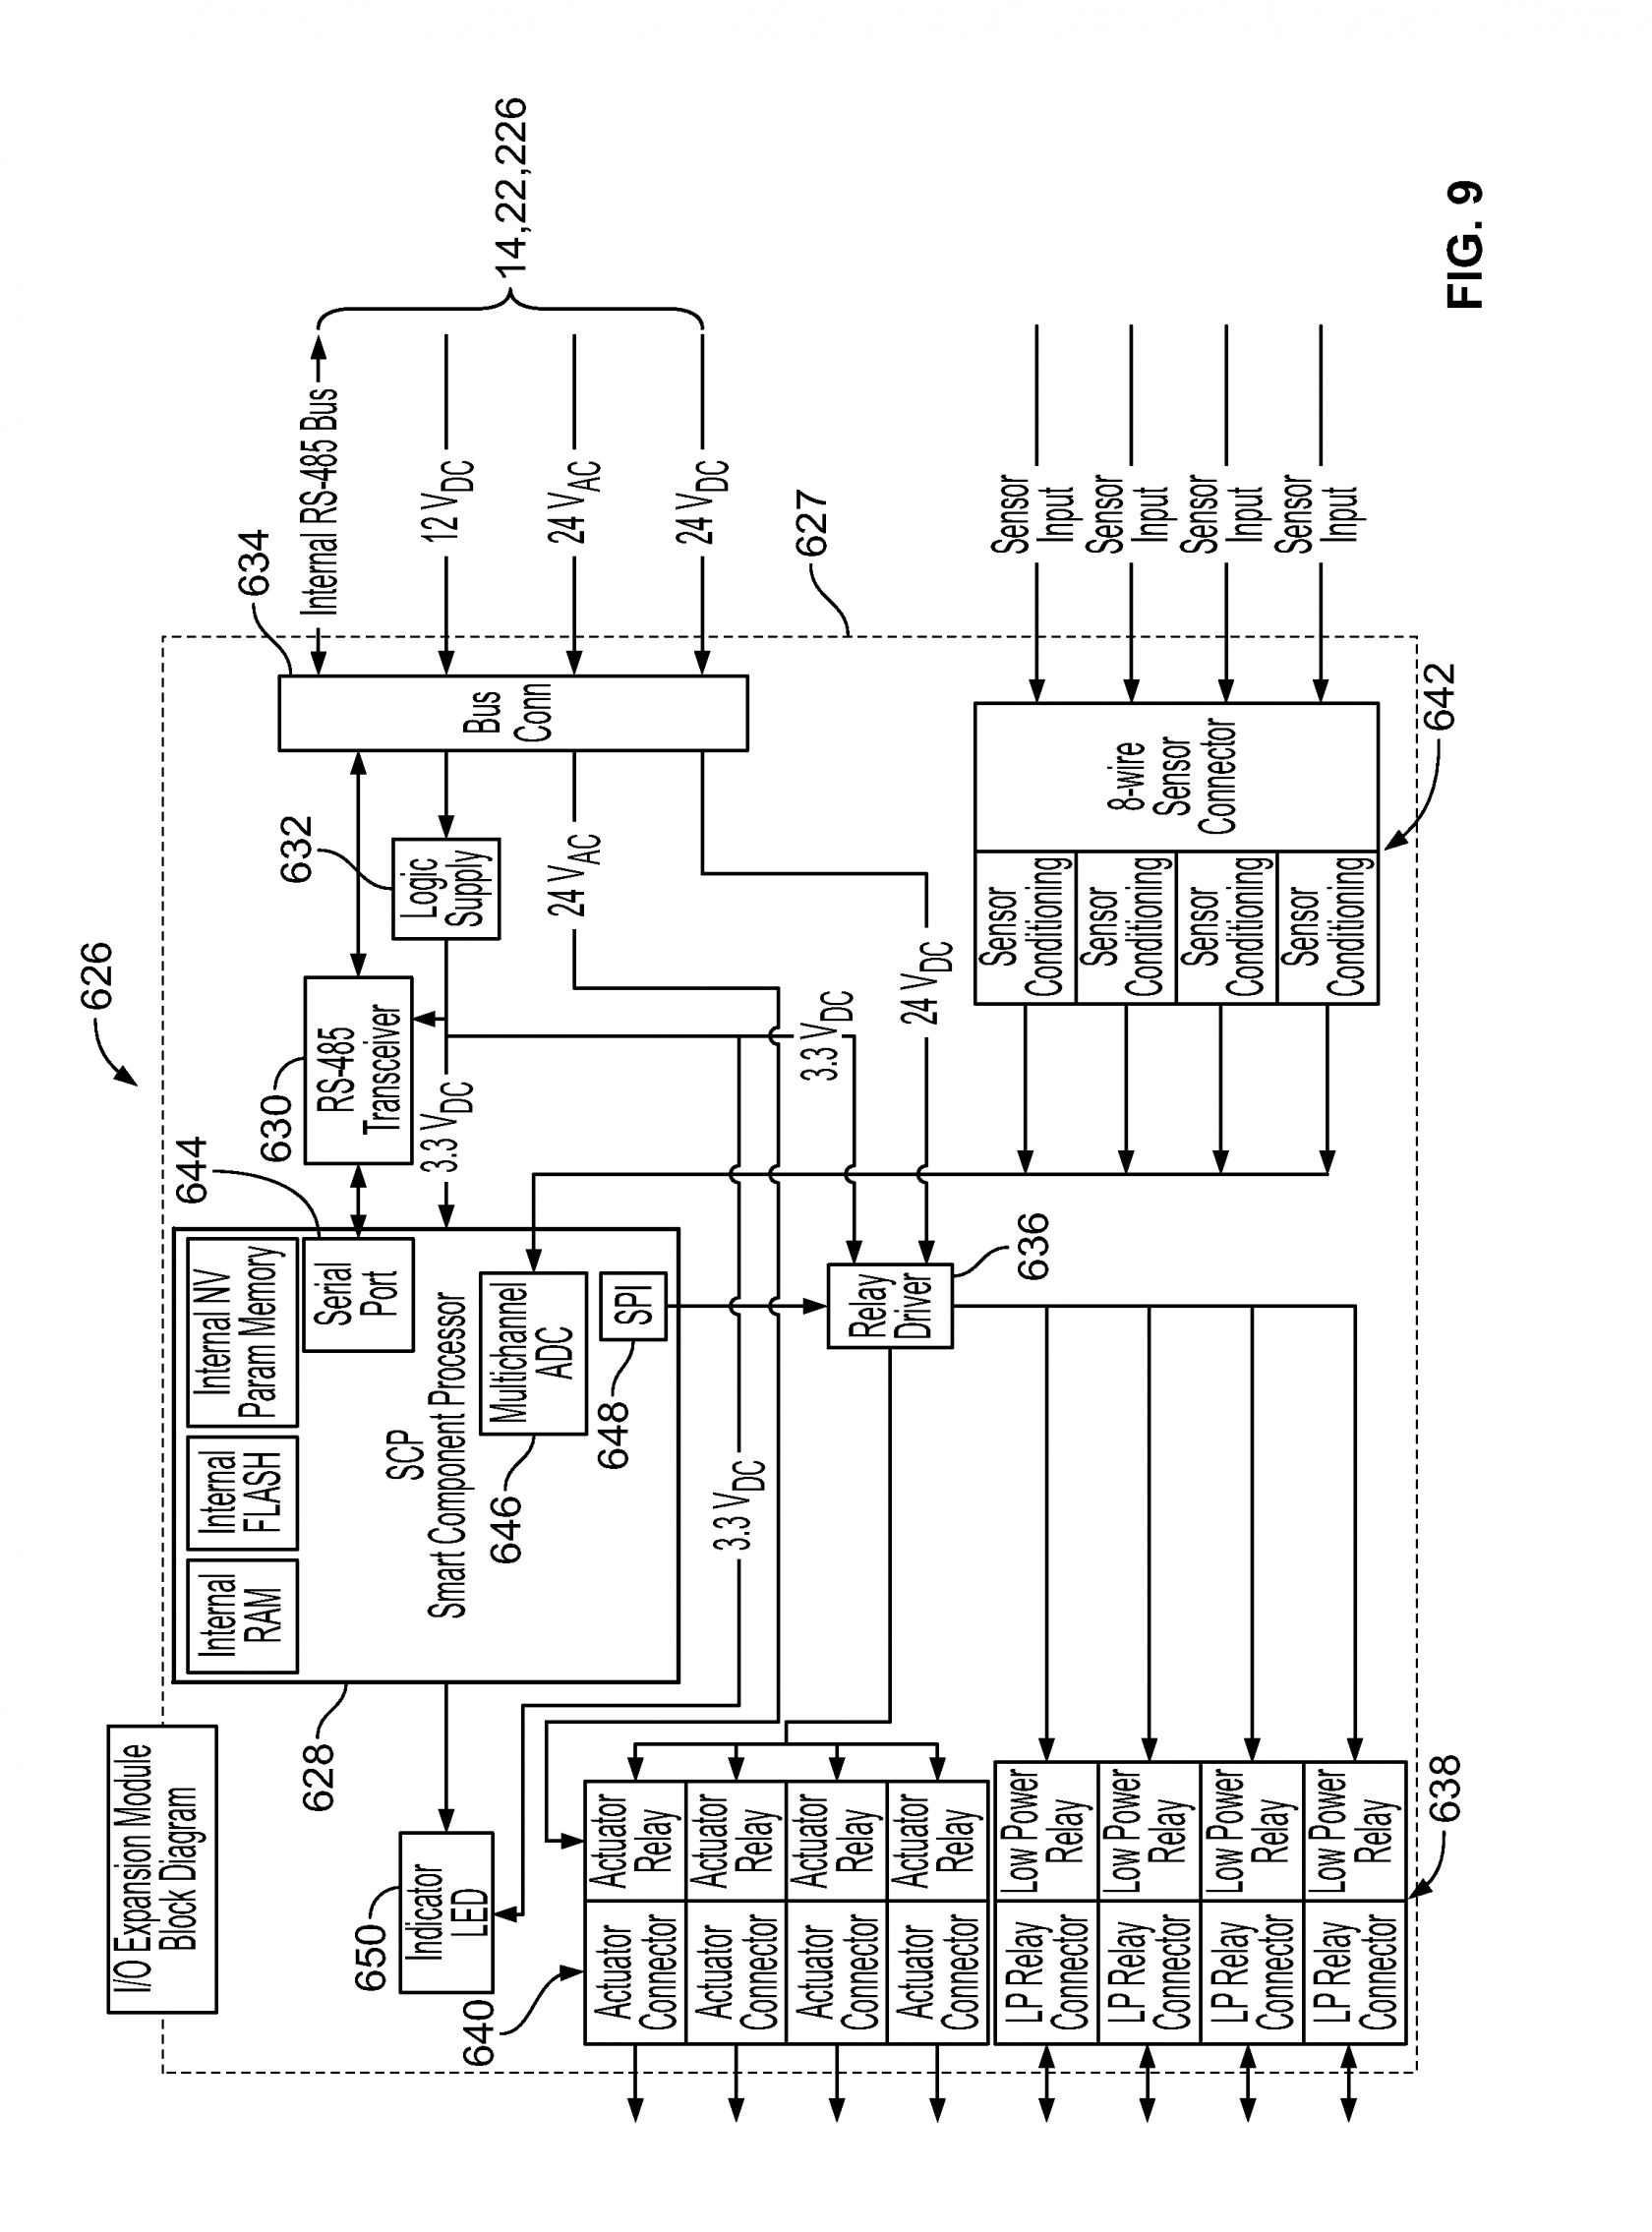 thermospa wiring diagram Collection-Thermospa Wiring Diagram Elegant Sta Rite Pump Wiring Diagram Pool Ga 400 Series Spares Swimming 4-l